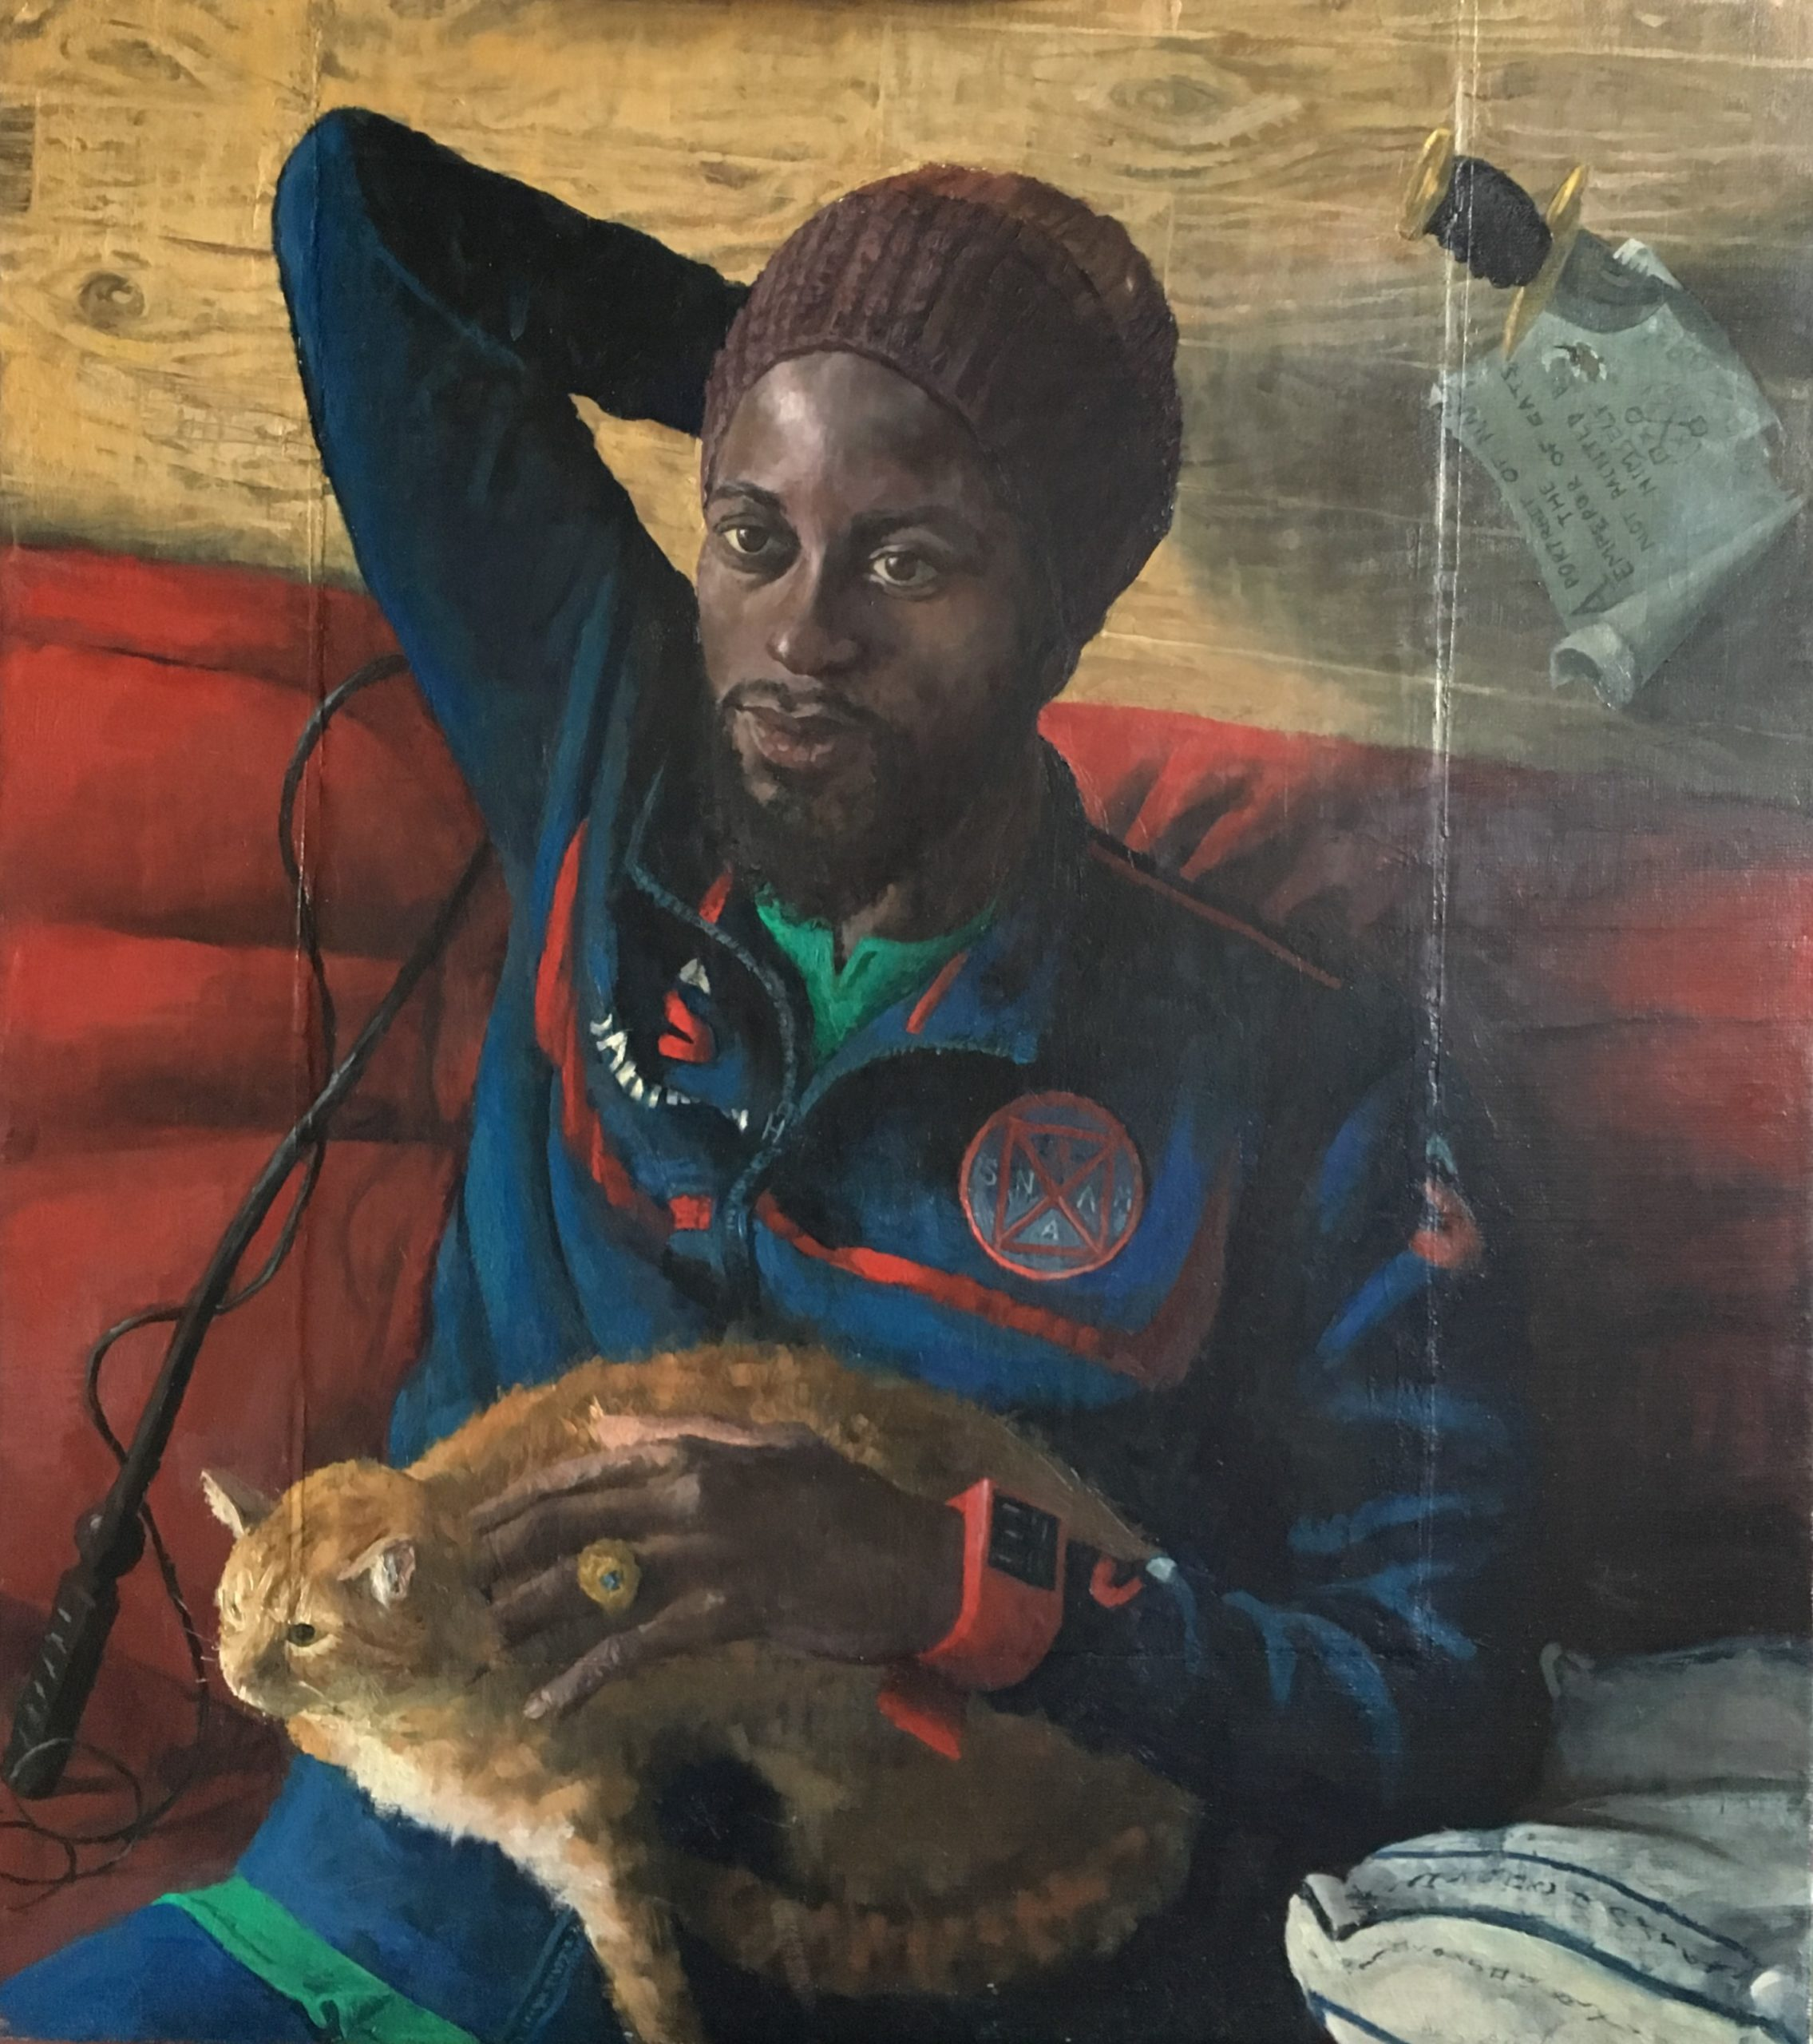 Emperor Of Cats Sam Rachamin Oil on linen mounted on wood, 80 x 90 cm